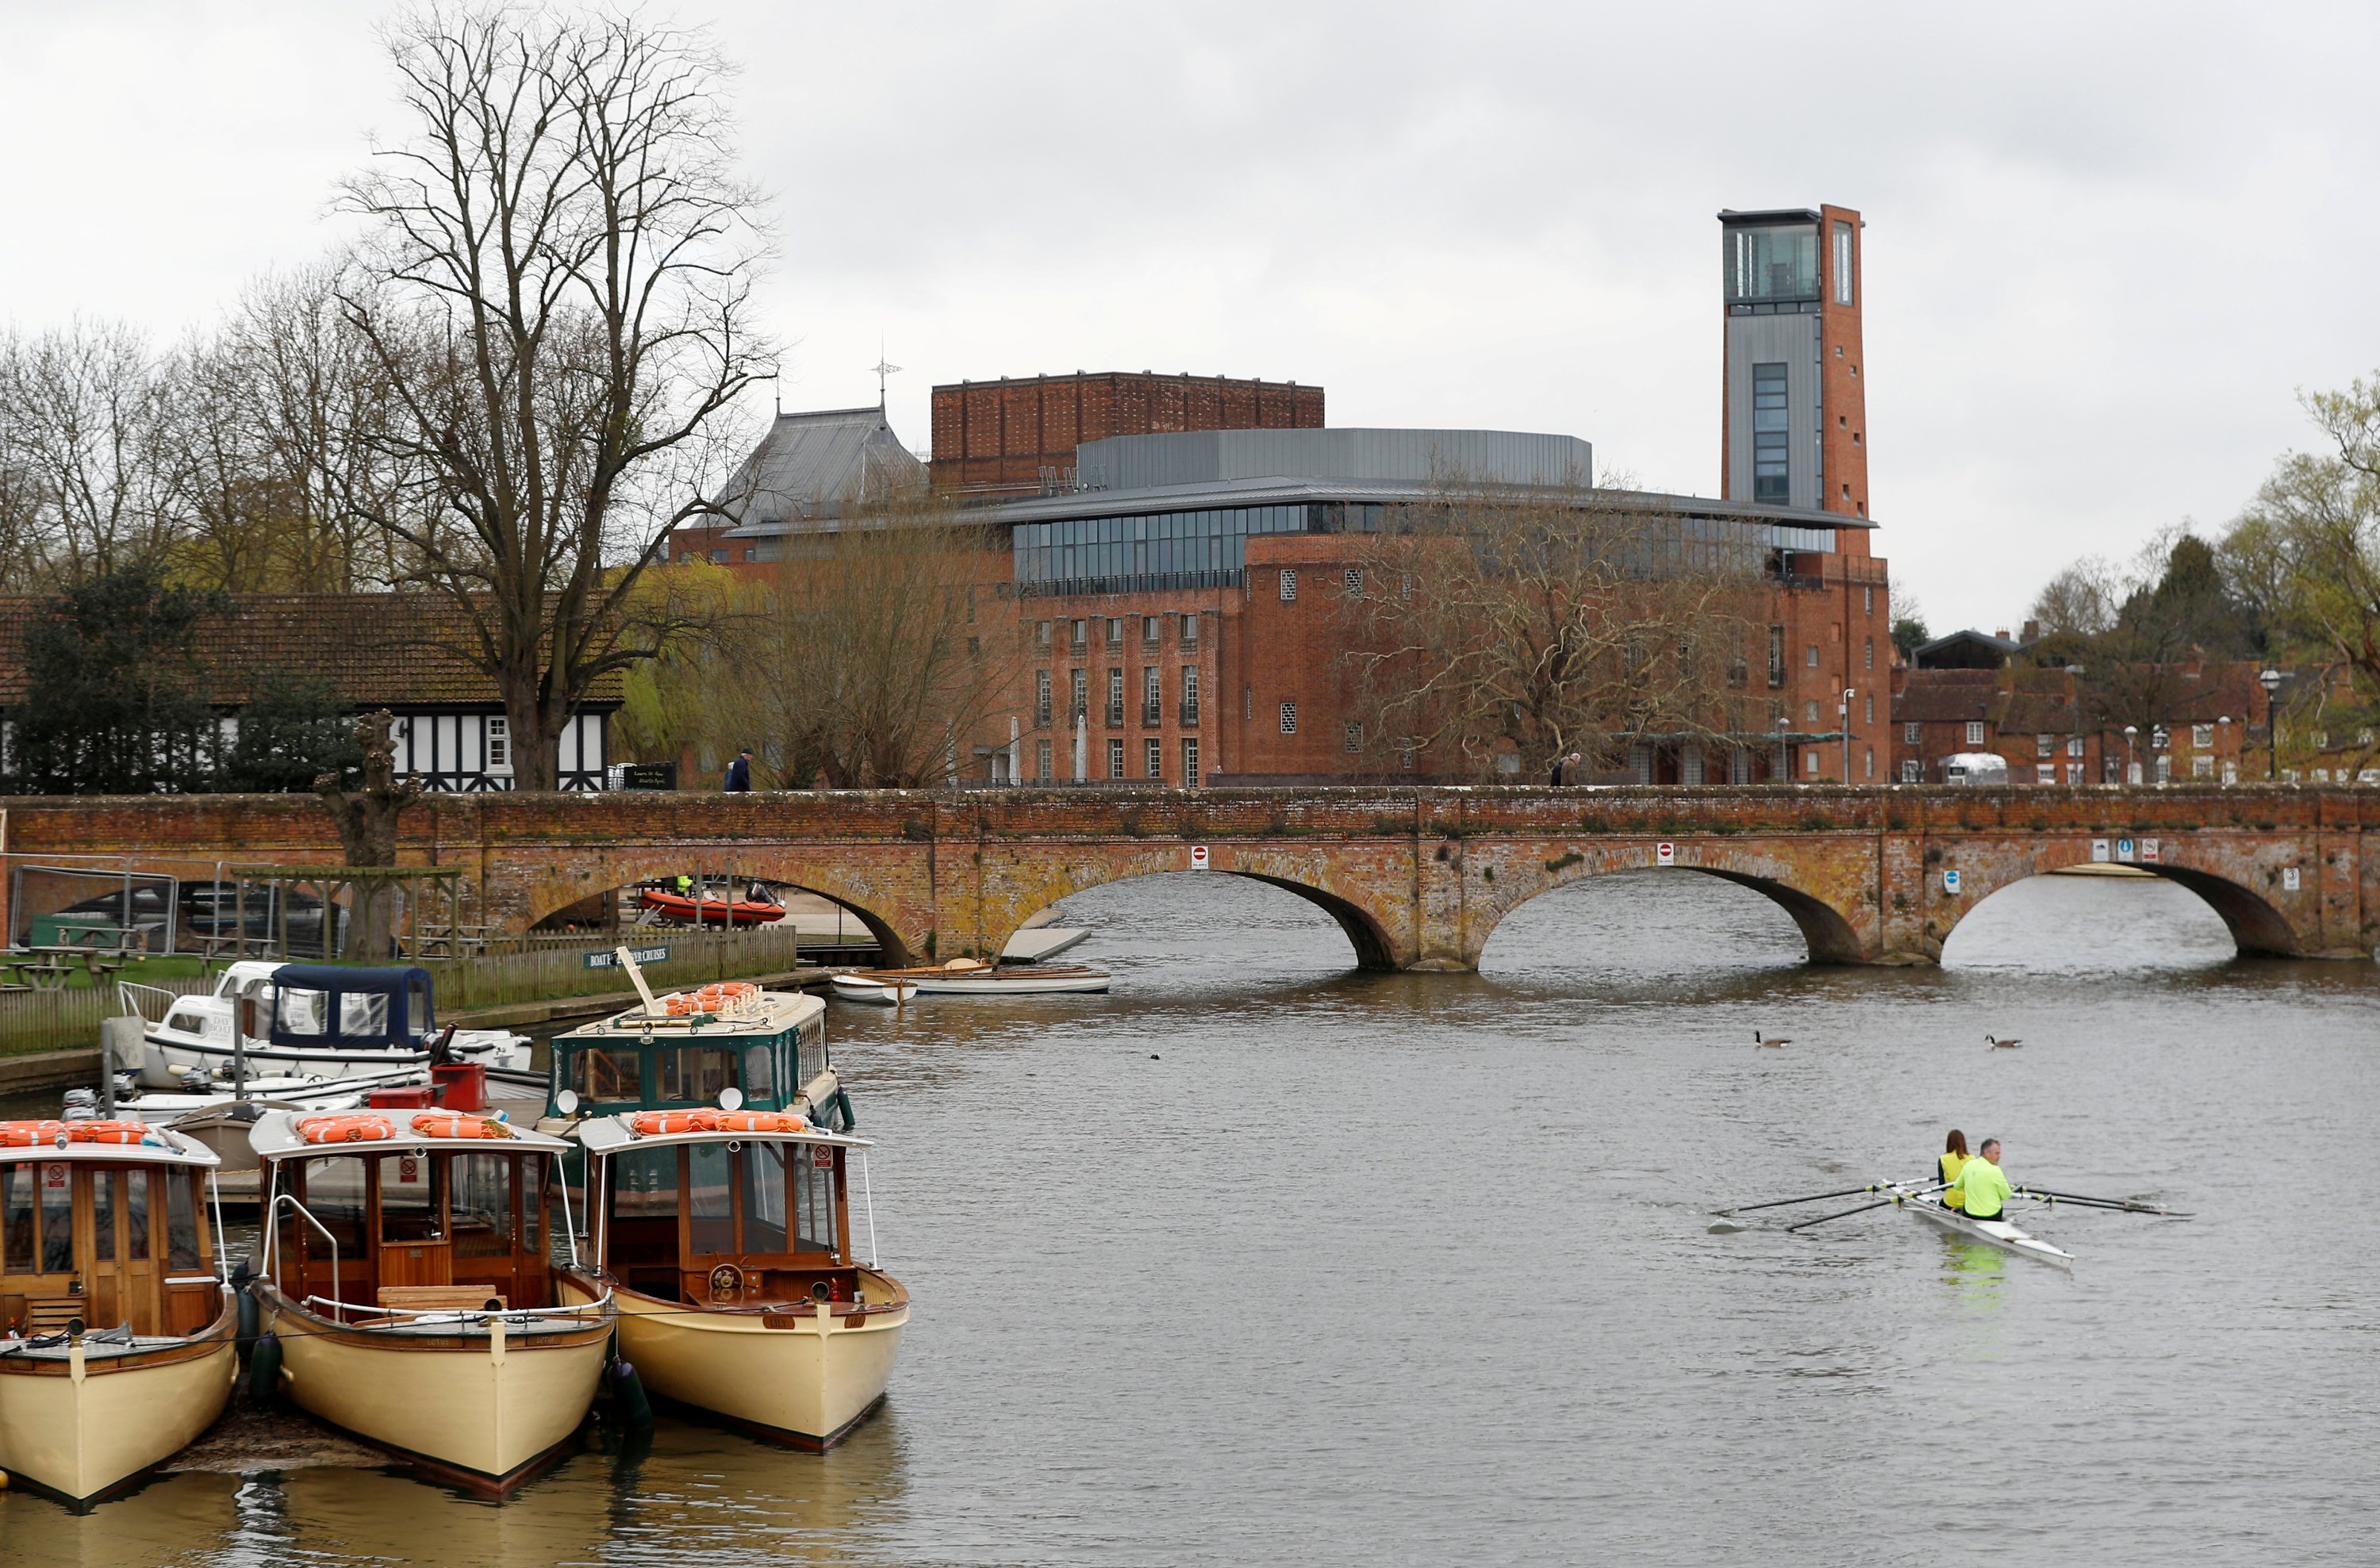 The Royal Shakespeare Company's theater complex is seen beyond the footbridge in Stratford-upon-Avon, U.K., March 22, 2019. (Reuters Photo)